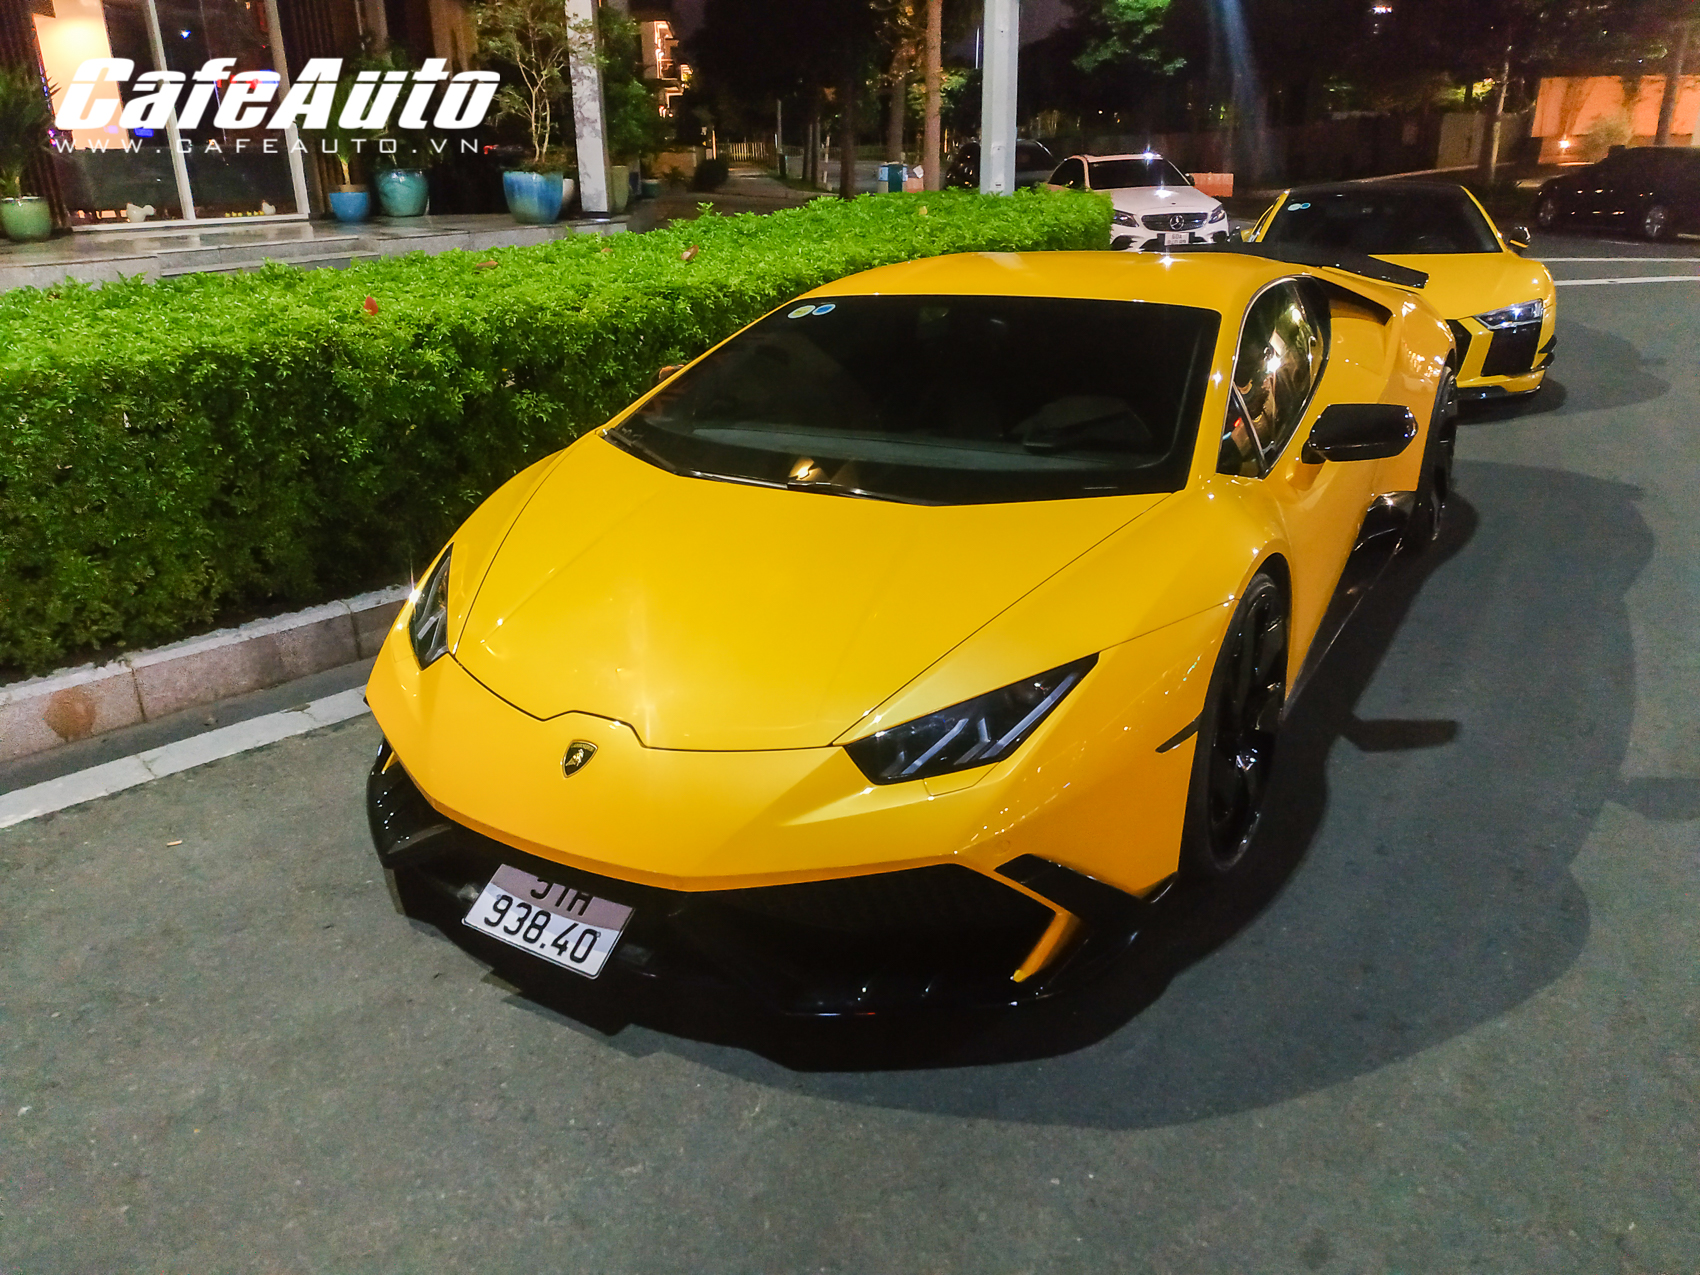 huracanmansory-cafeautovn-1